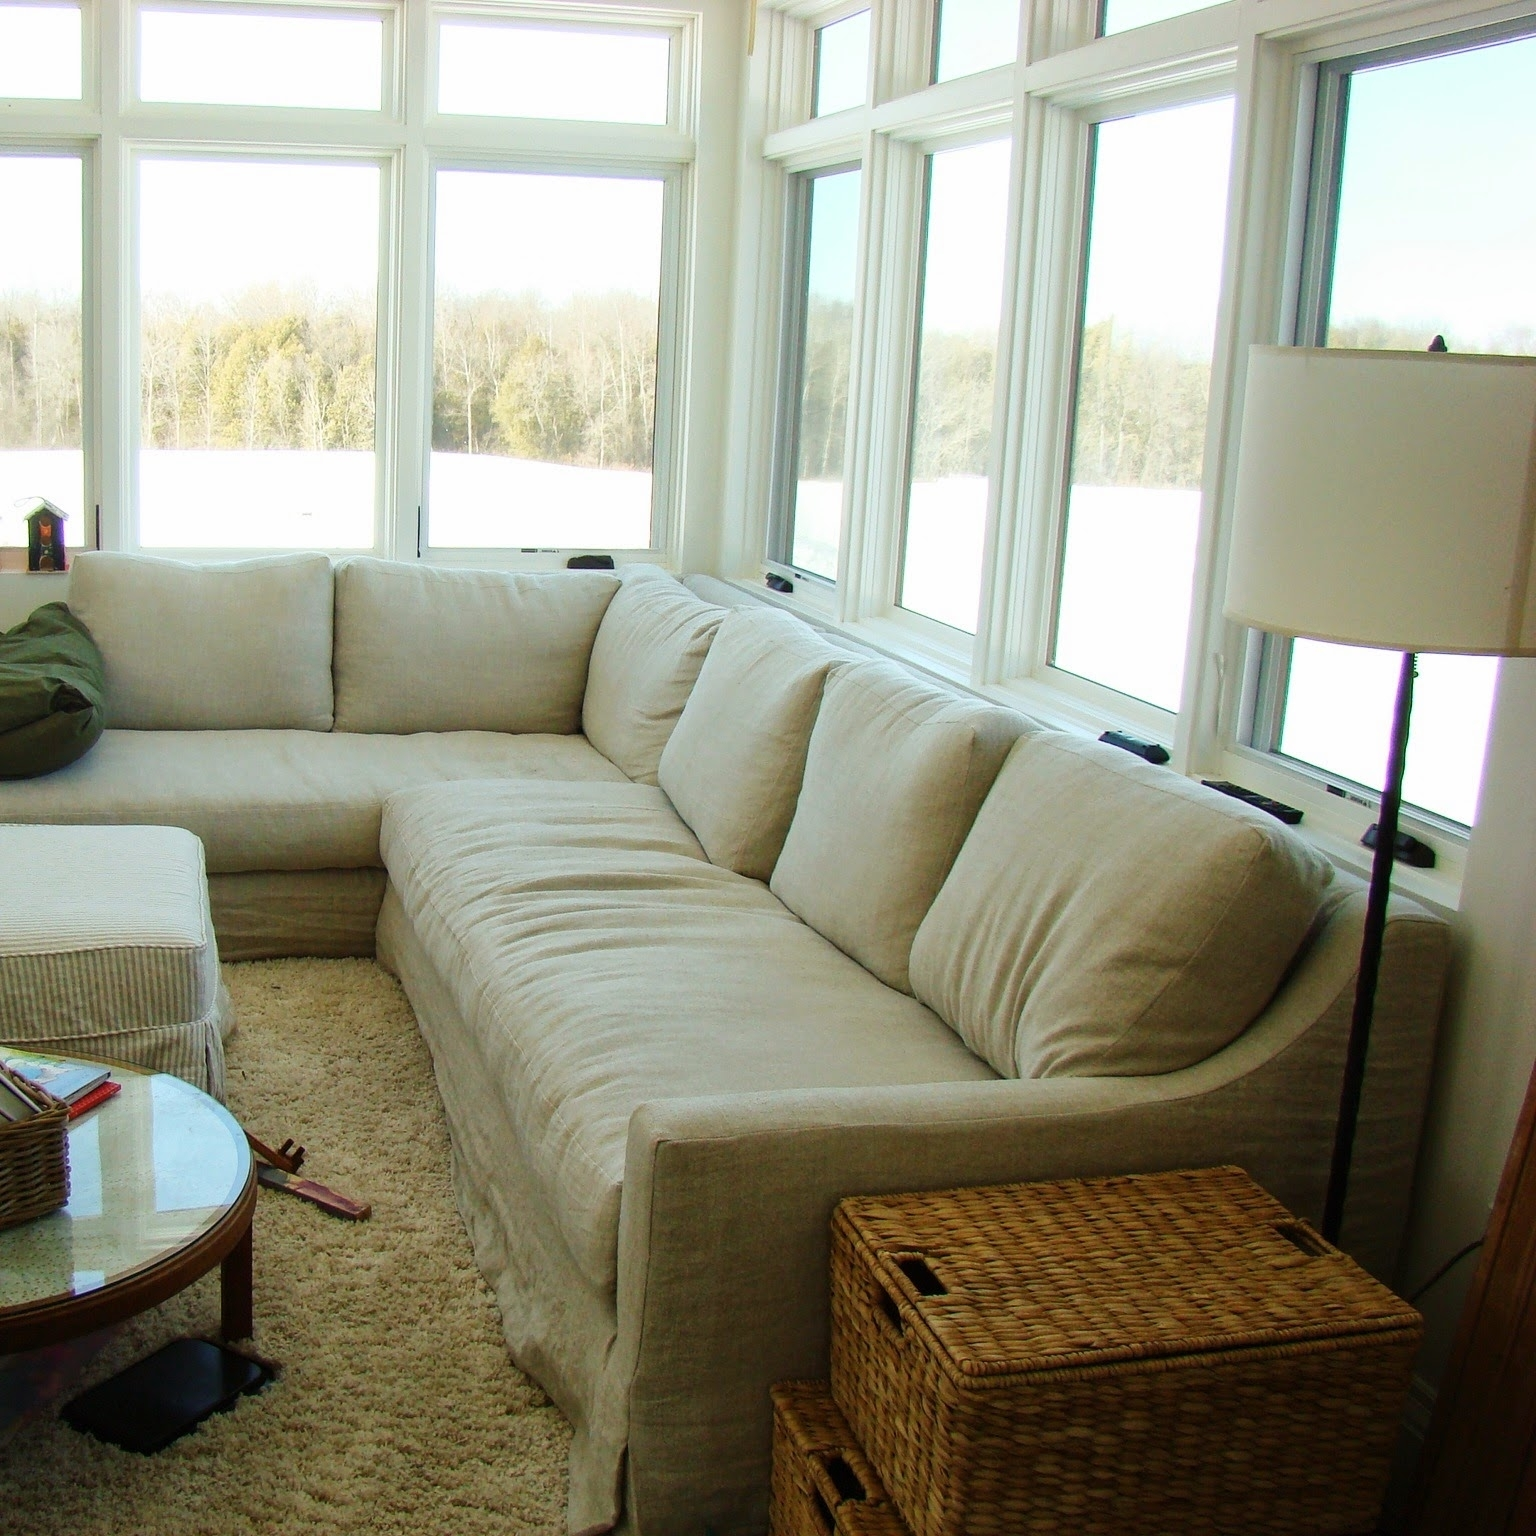 Recent Restoration Hardware Sectional Sofas Within Building Walnut Farm: Belgian Linen Slipcovered Furniture (View 2 of 20)